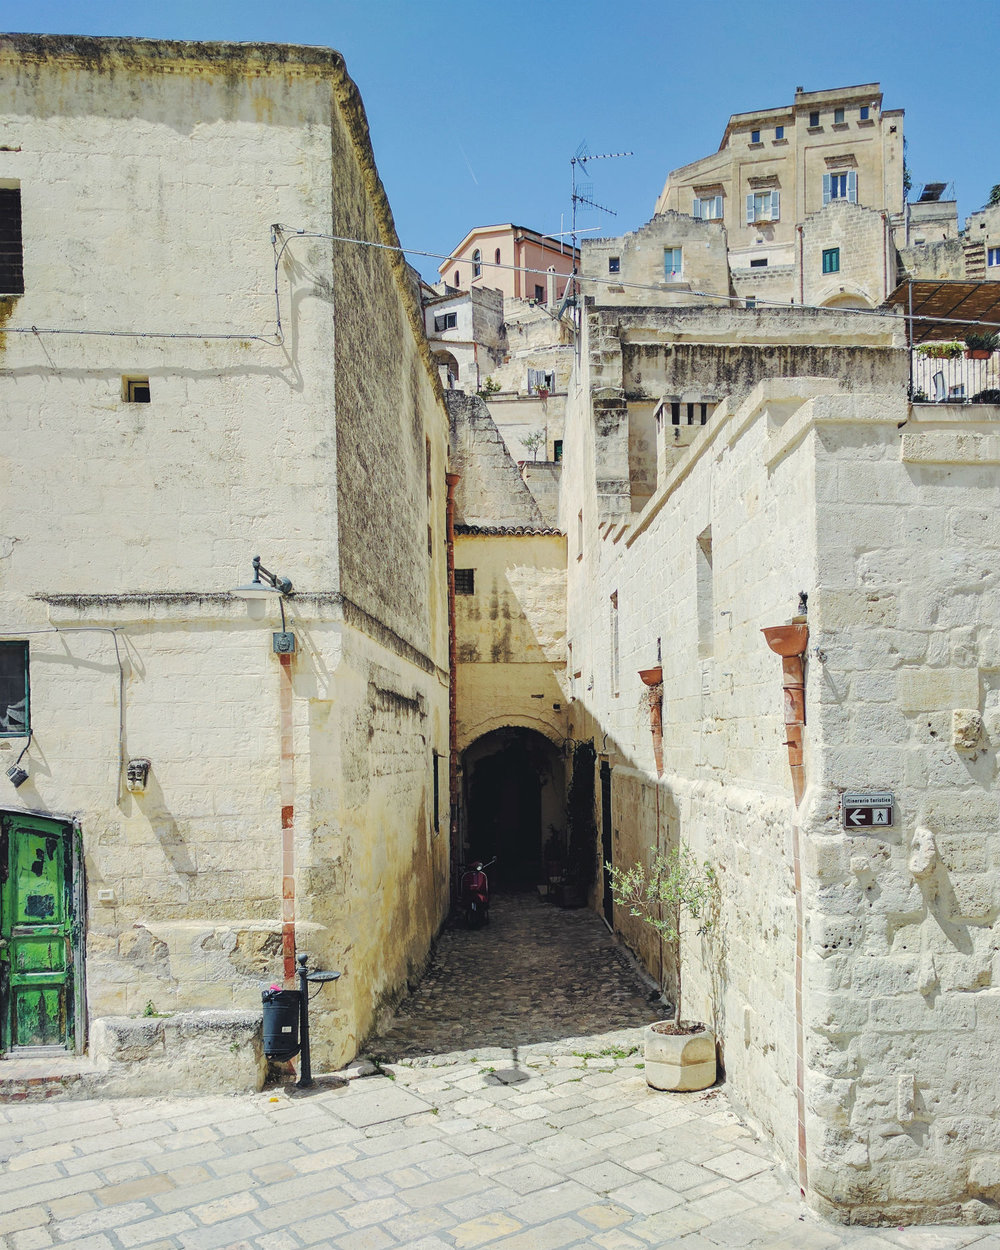 A vicolo in Matera, Basilicata, Italy. The old and the new.